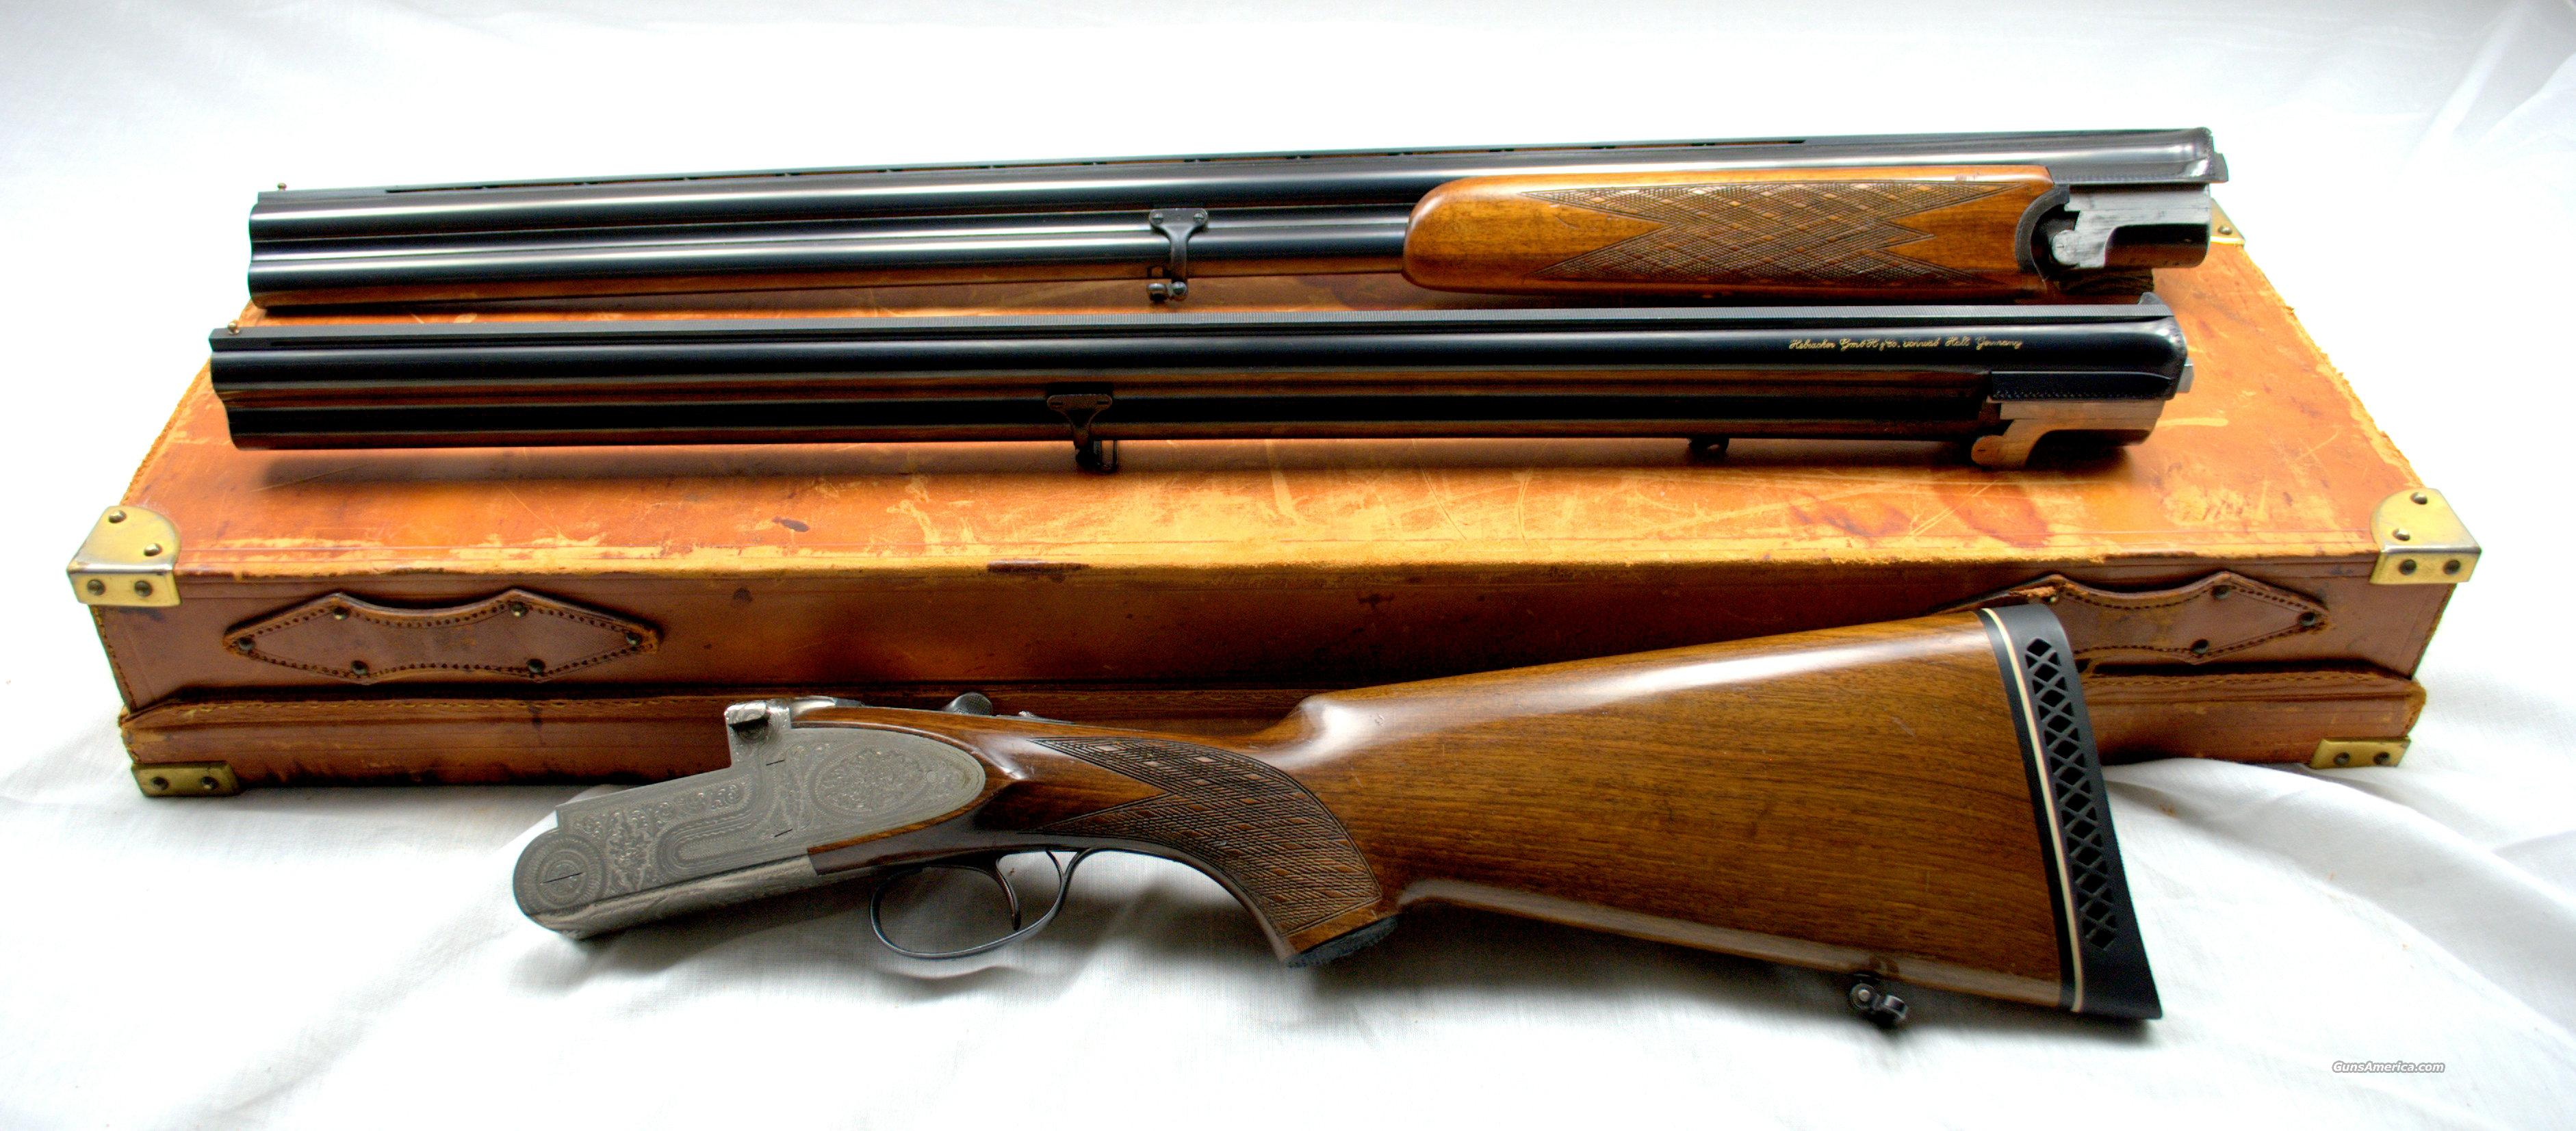 HEBSACKER SUPERPOSED ENGRAVED TWO BARREL SET 12GA  Guns > Shotguns > H Misc Shotguns